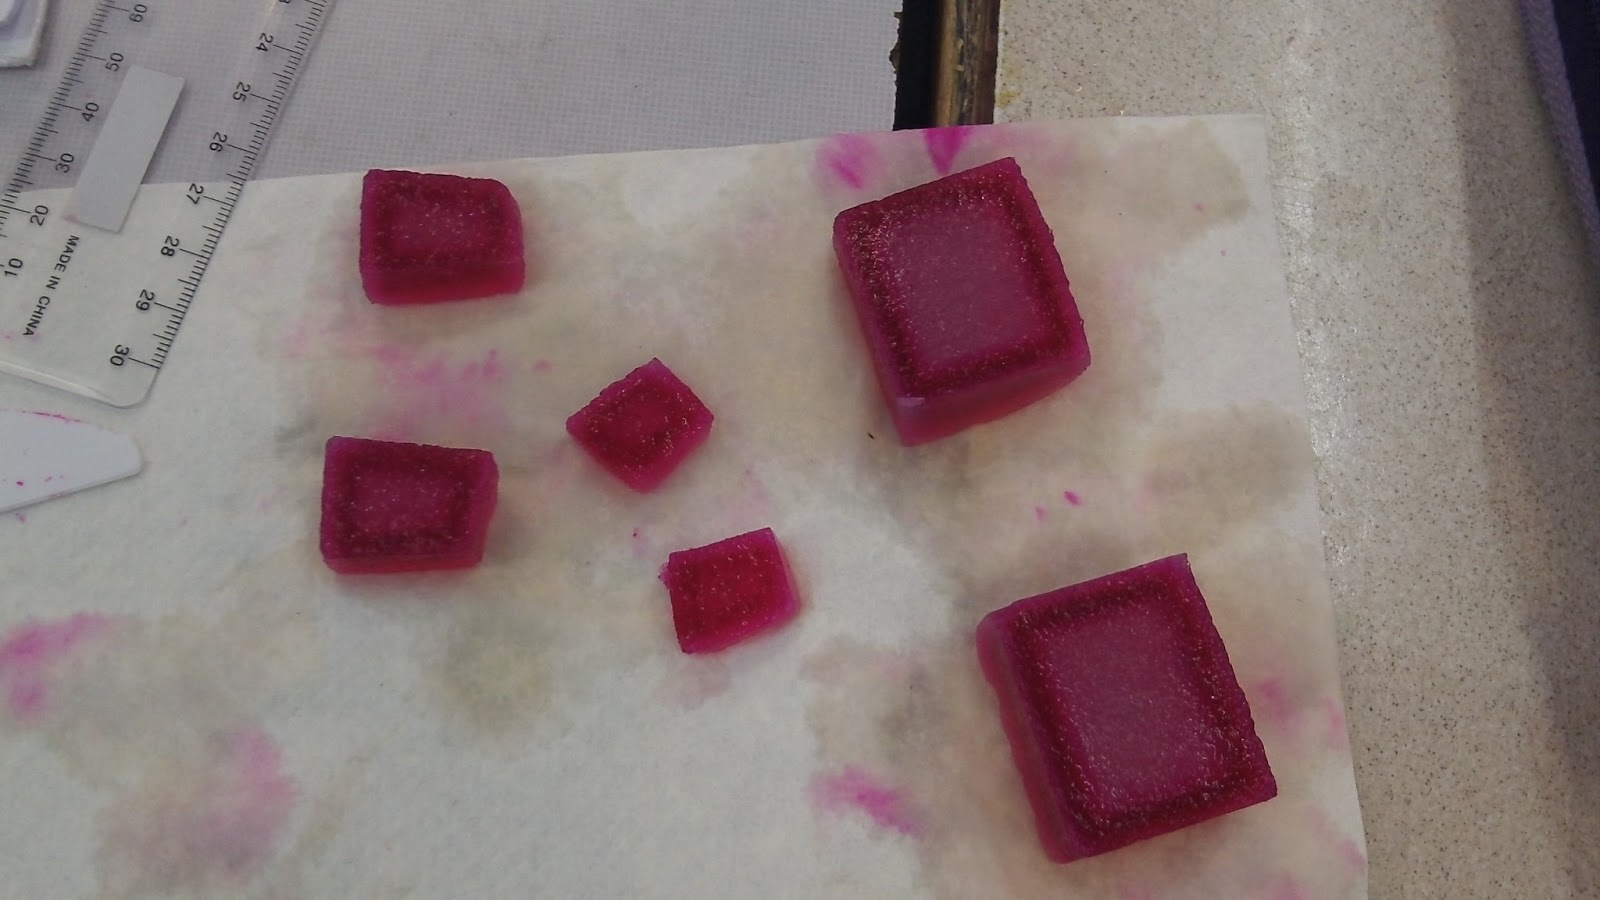 decolorizing agar cubes with naoh Help students explore the relationship between diffusion and cell size using little blocks of prepared agar be sure to subscribe and check out more videos.